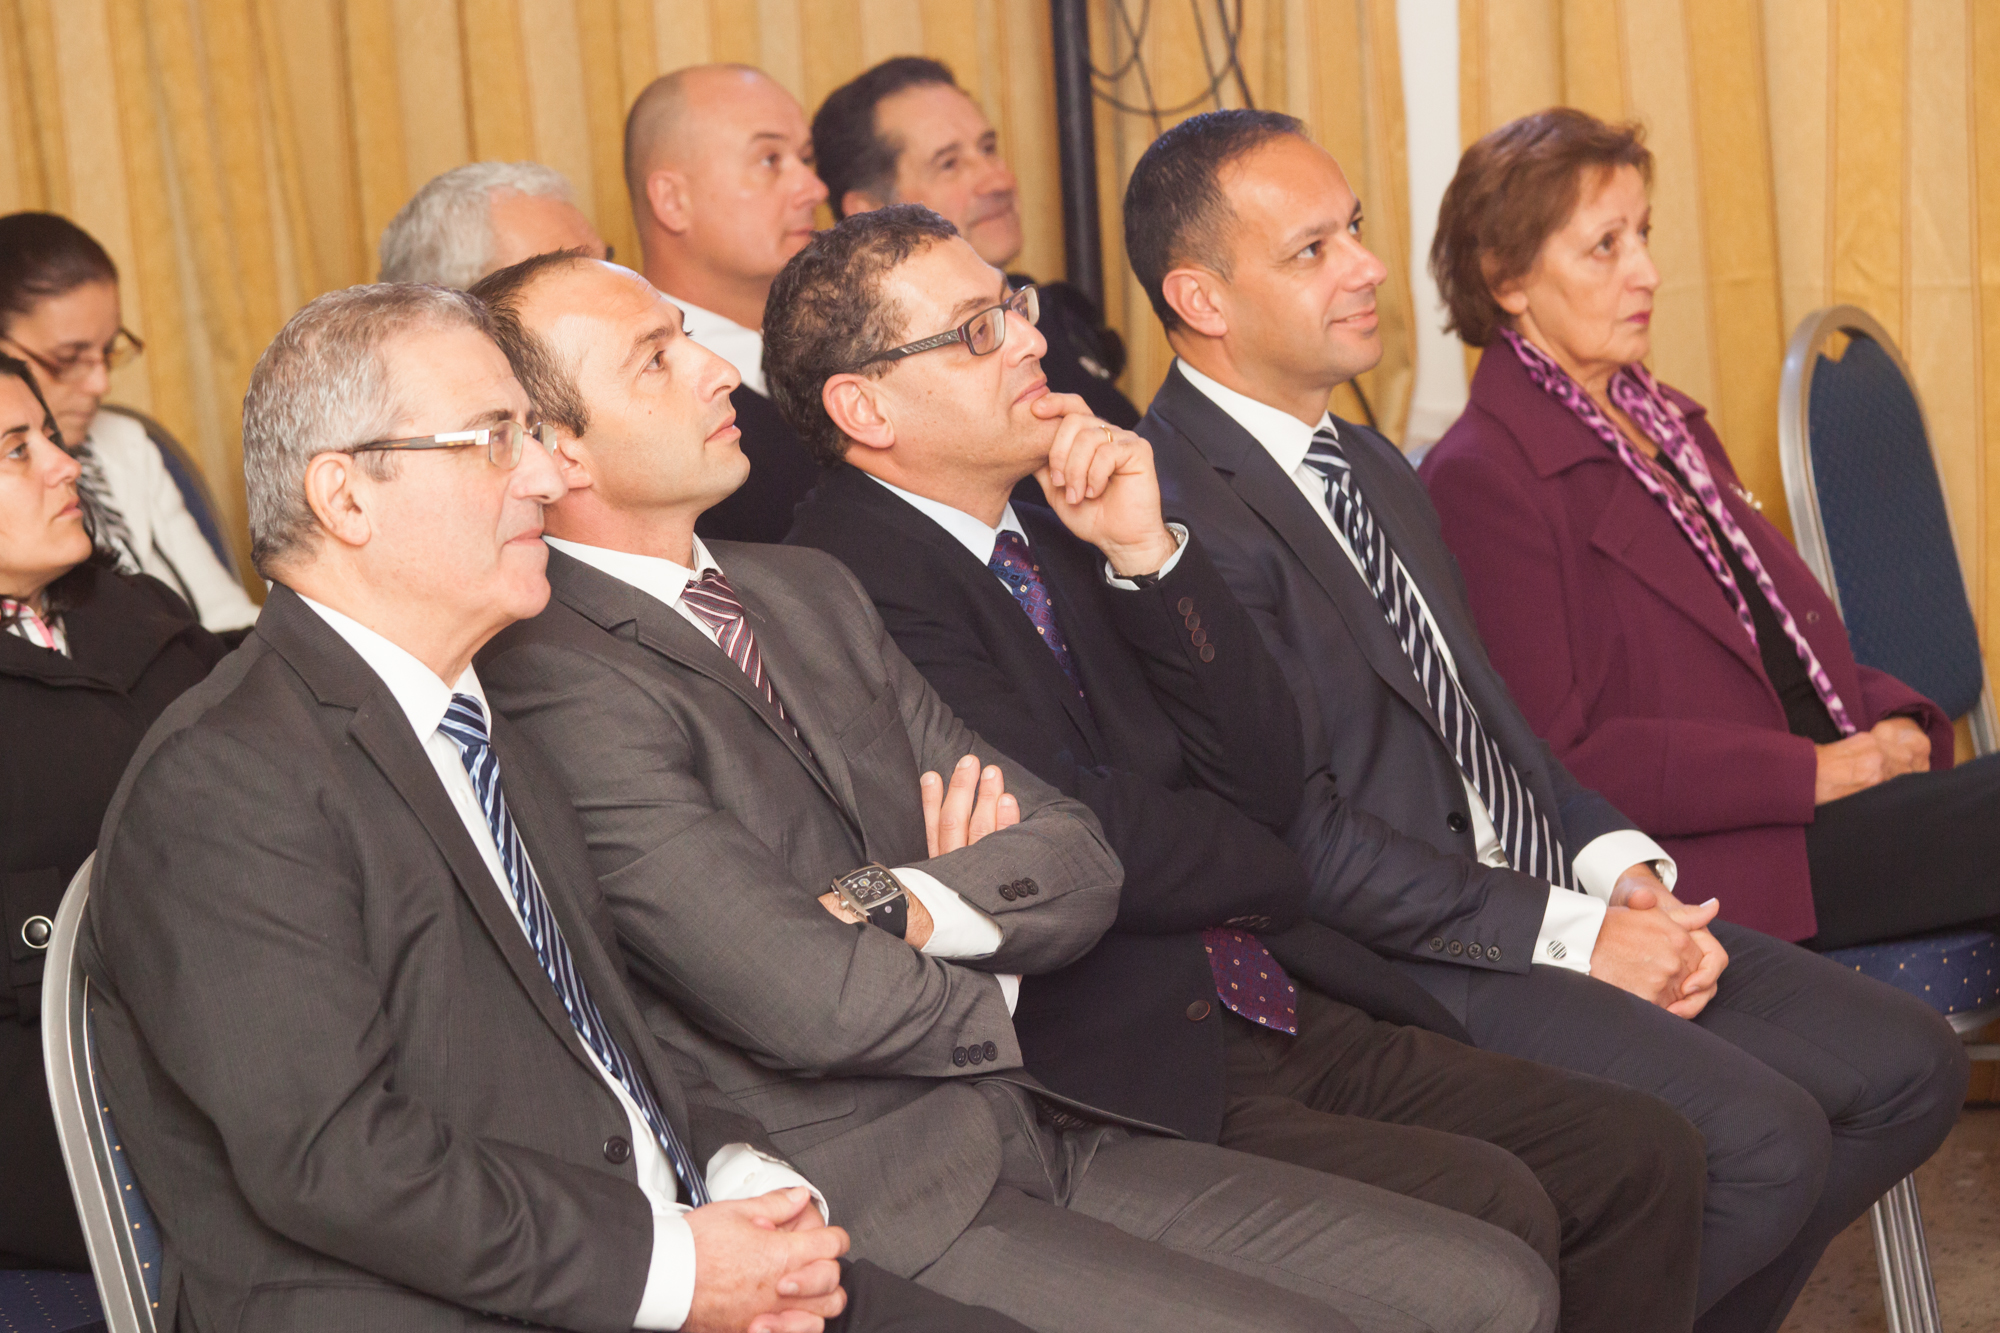 Enjoying the show. From left to right: Minister of Education Evarist Bartolo, Head of School Bernardo Riolo, Principal James Camilleri, Valletta 2018 Chairman Jason Micallef and School Council President Lilian Azzopardi